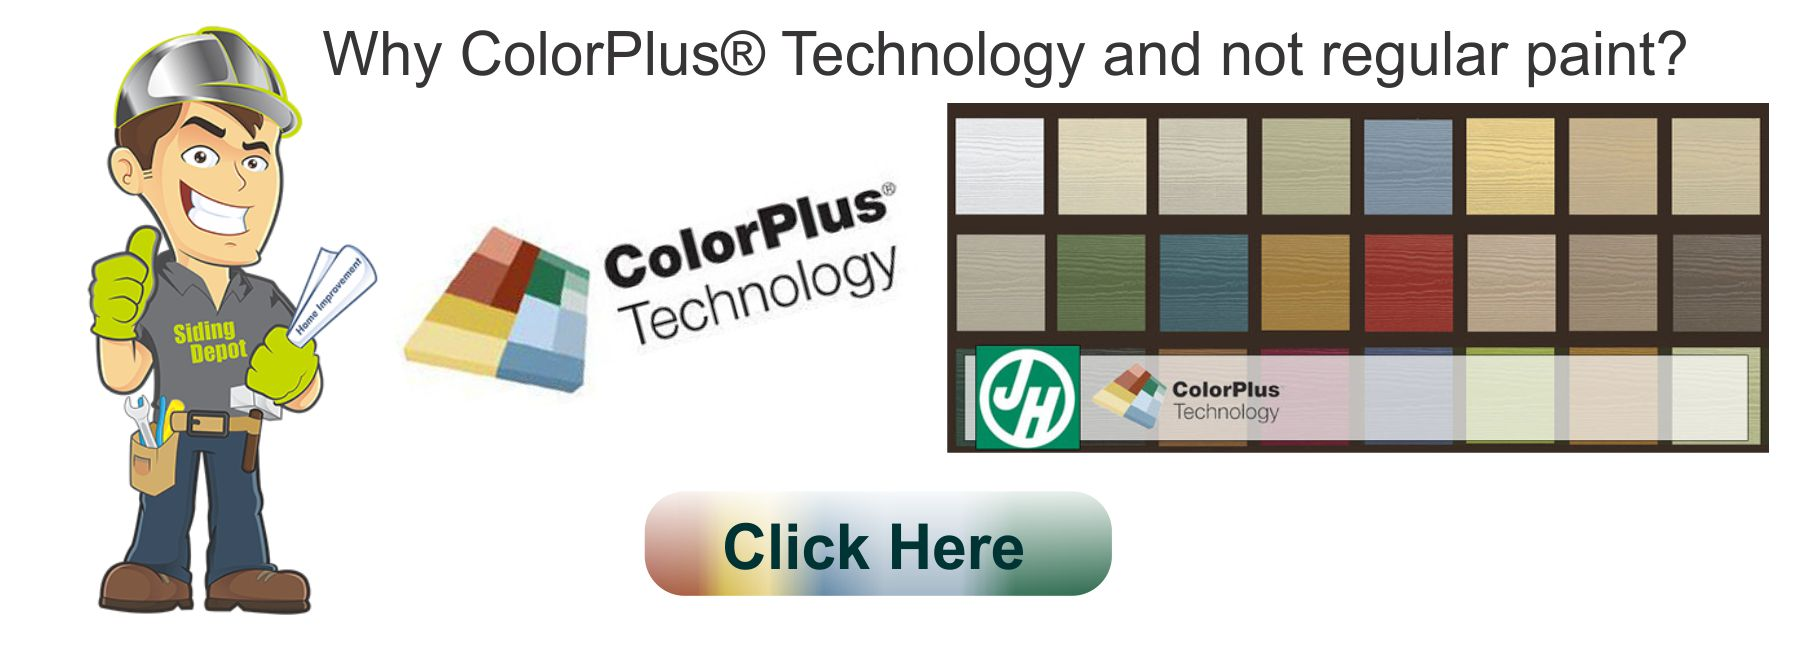 Colorplus Technology